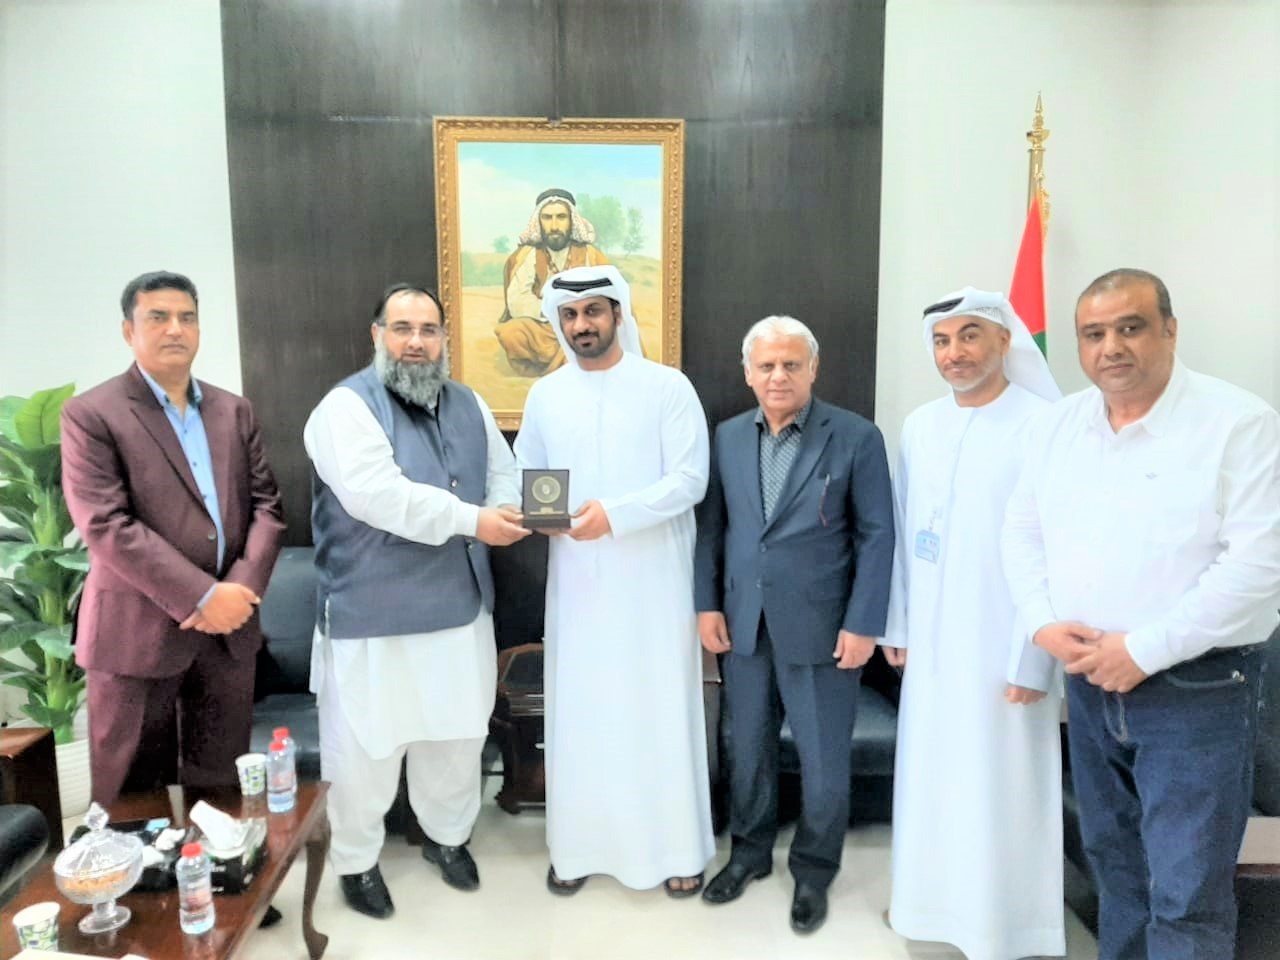 On September 07, 2021, A Delegation of Sialkot Chamber of Commerce & Industry visited the Embassy of United Arab Emirates (UAE) in Islamabad. The delegation was led by Mr. Khuram Aslam, Senior Vice President and Mr. Ansar Aziz Puri, Vice President accompanied by Mr. Mohammad Sarwar and Mr. Mohammad Bilal Dar, SCCI Executive Committee Members. The Delegates had meeting with First Secretaries, Embassy of United Arab Emirates (UAE) in Pakistan to discuss matters regarding promotion of bilateral trade between UAE and Pakistan.